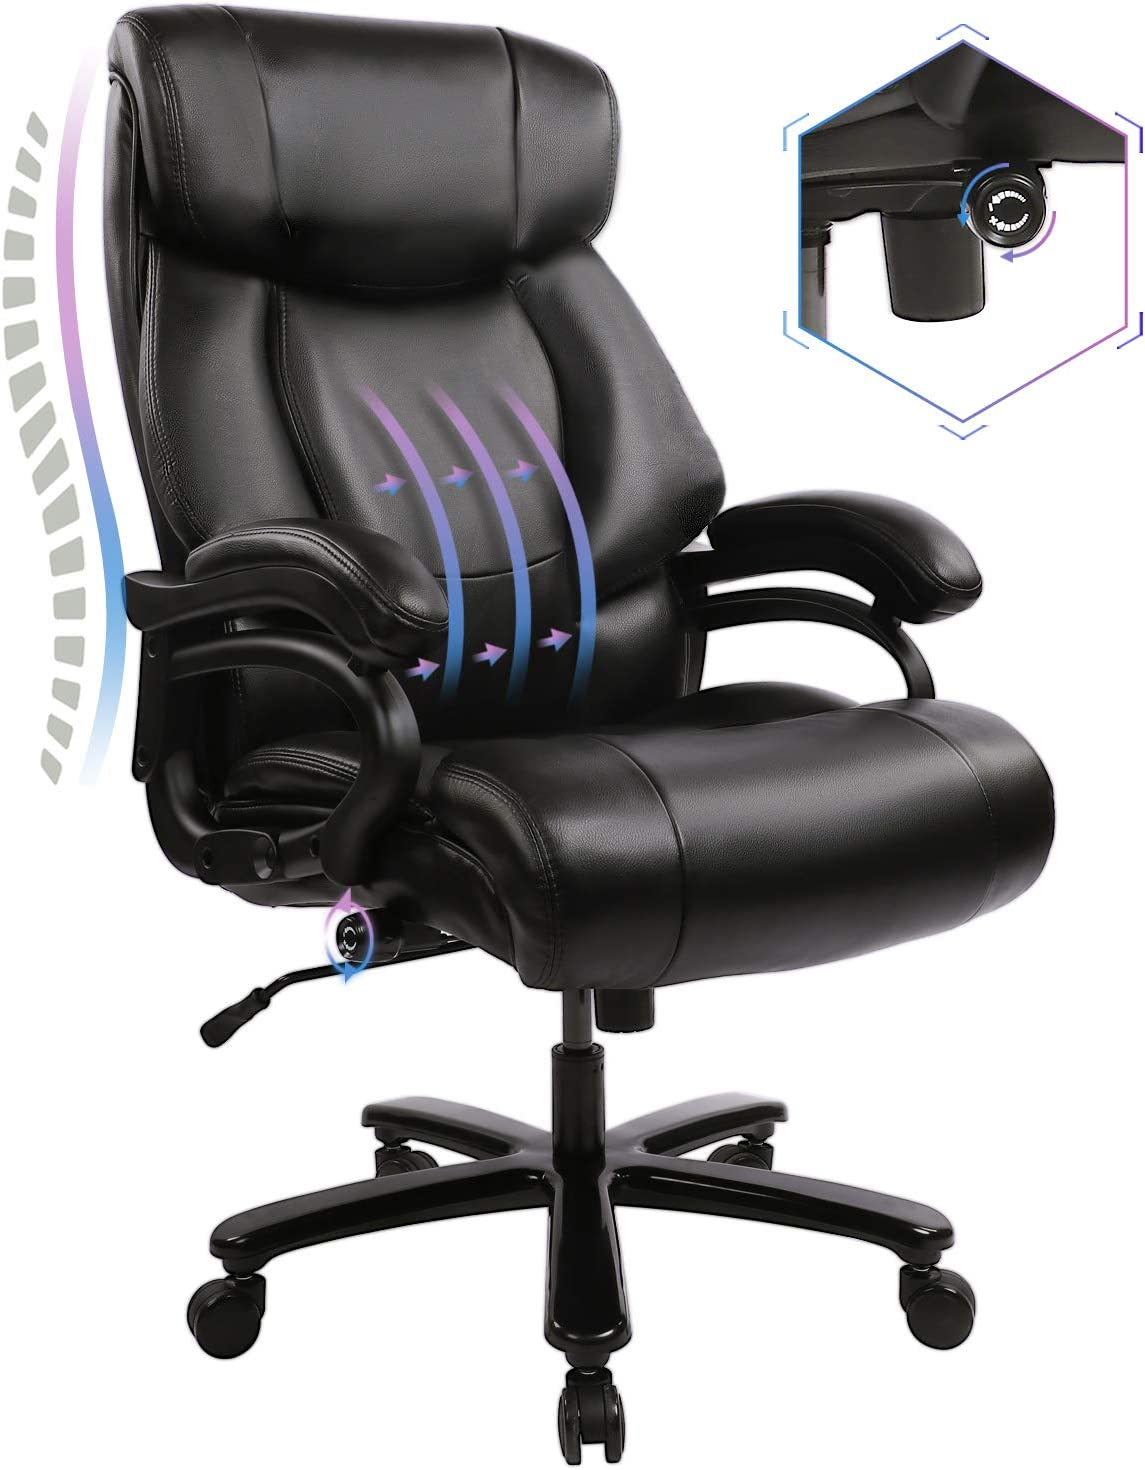 KBEST High Back Big /& Tall 400lb Office Chair Adjustable Built-in Lumbar Support and Tilt Angle Black Heavy Duty Metal Base Large Bonded Leather Ergonomic Executive Desk Computer Swivel Chair